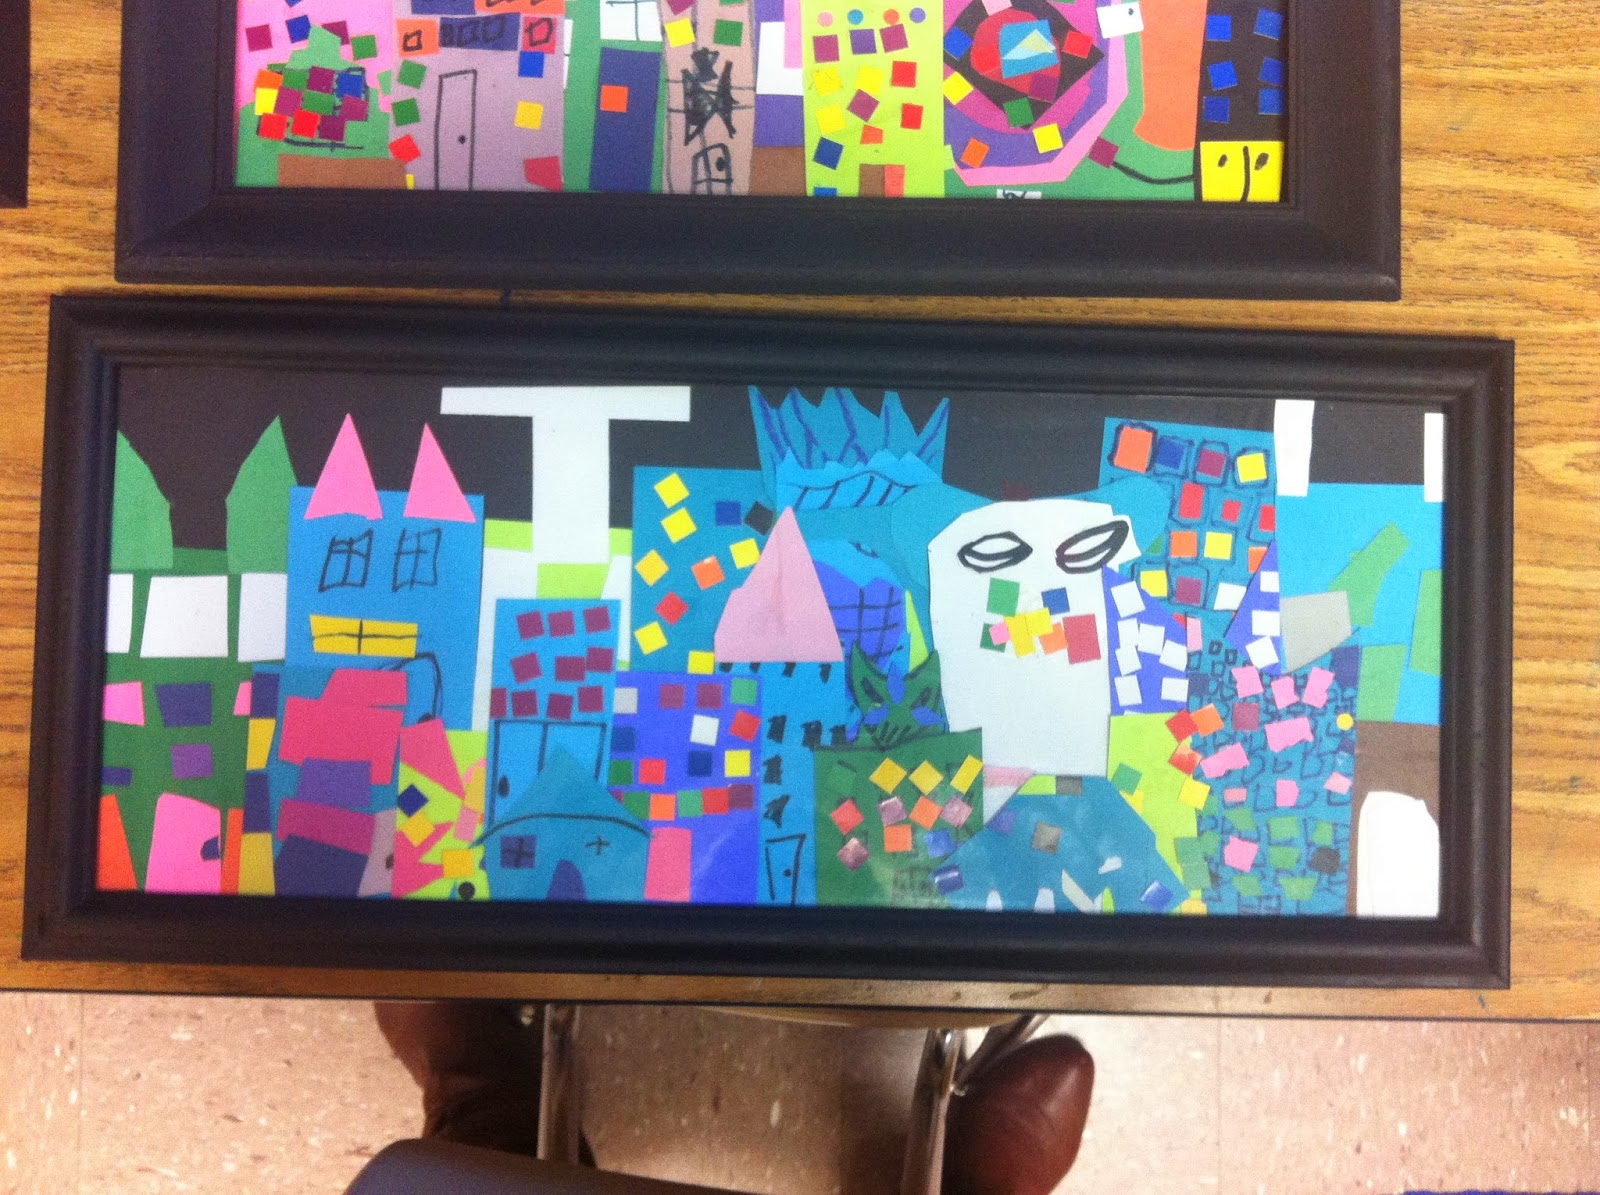 Chumleyscobey Art Room Collaborative Cityscape Collage By